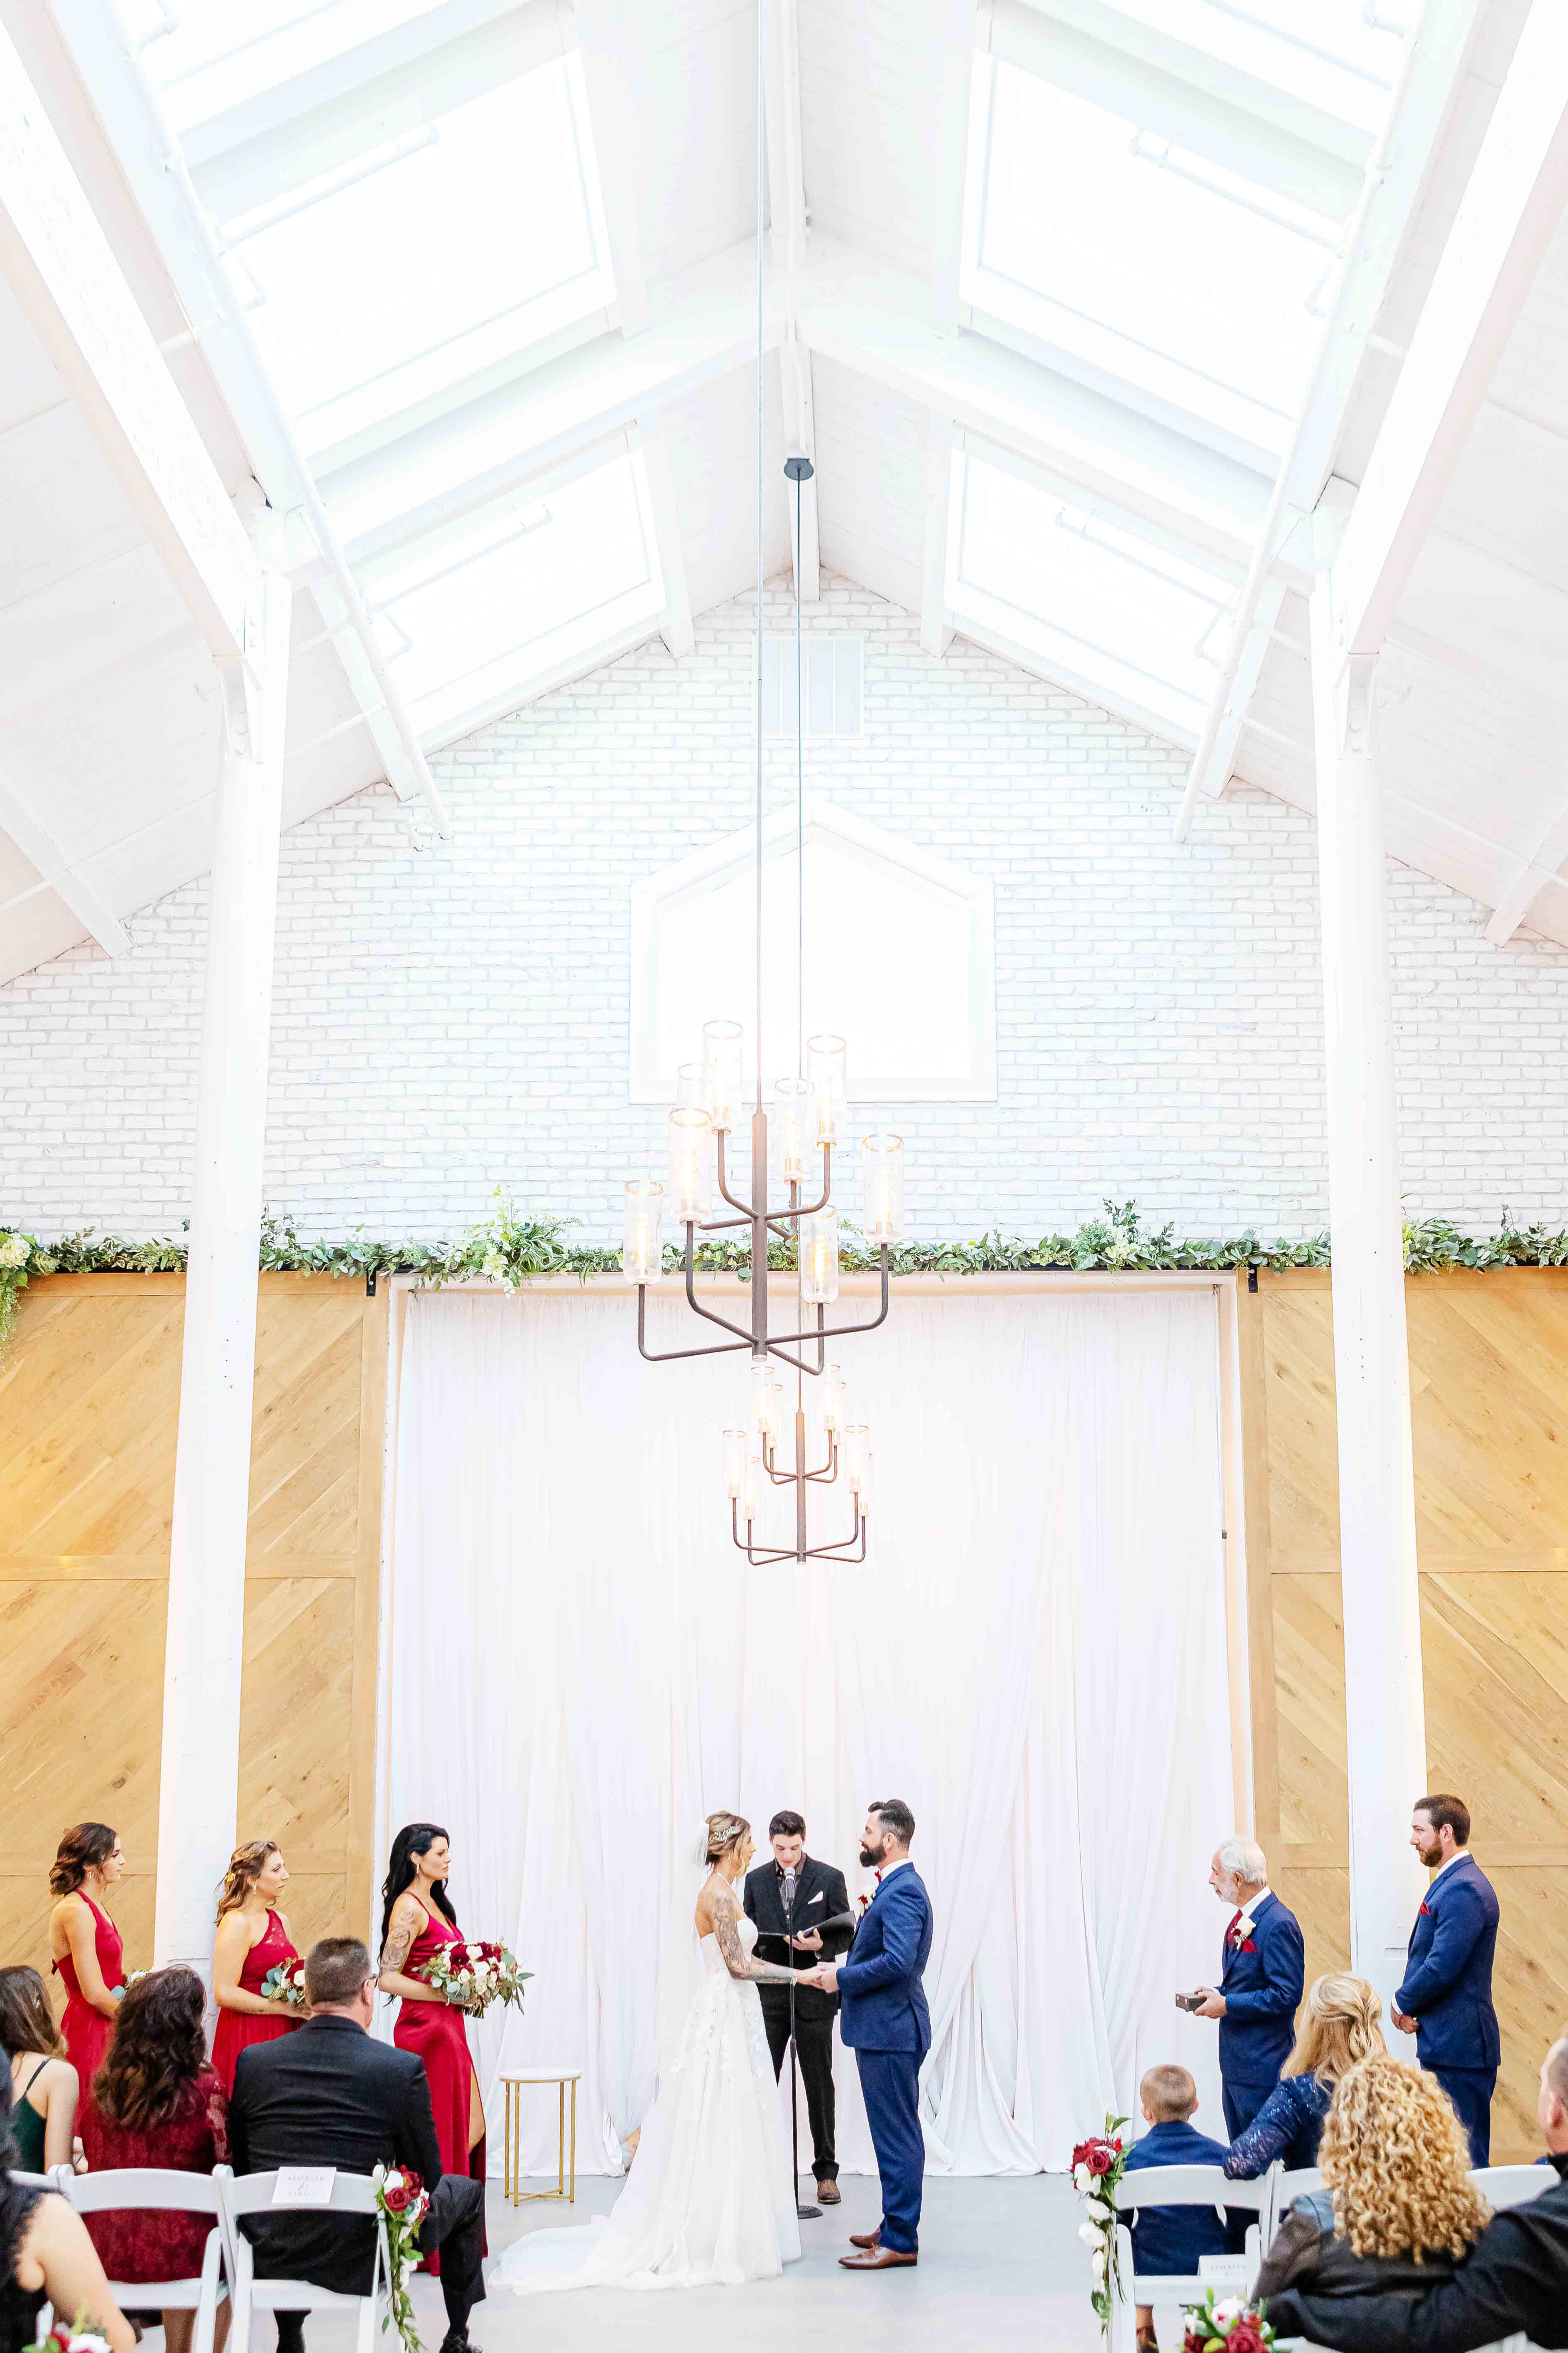 A Bright & Bold Wedding Ceremony - Aaron & Lynnea's Wedding at The Carlsbad Windmill